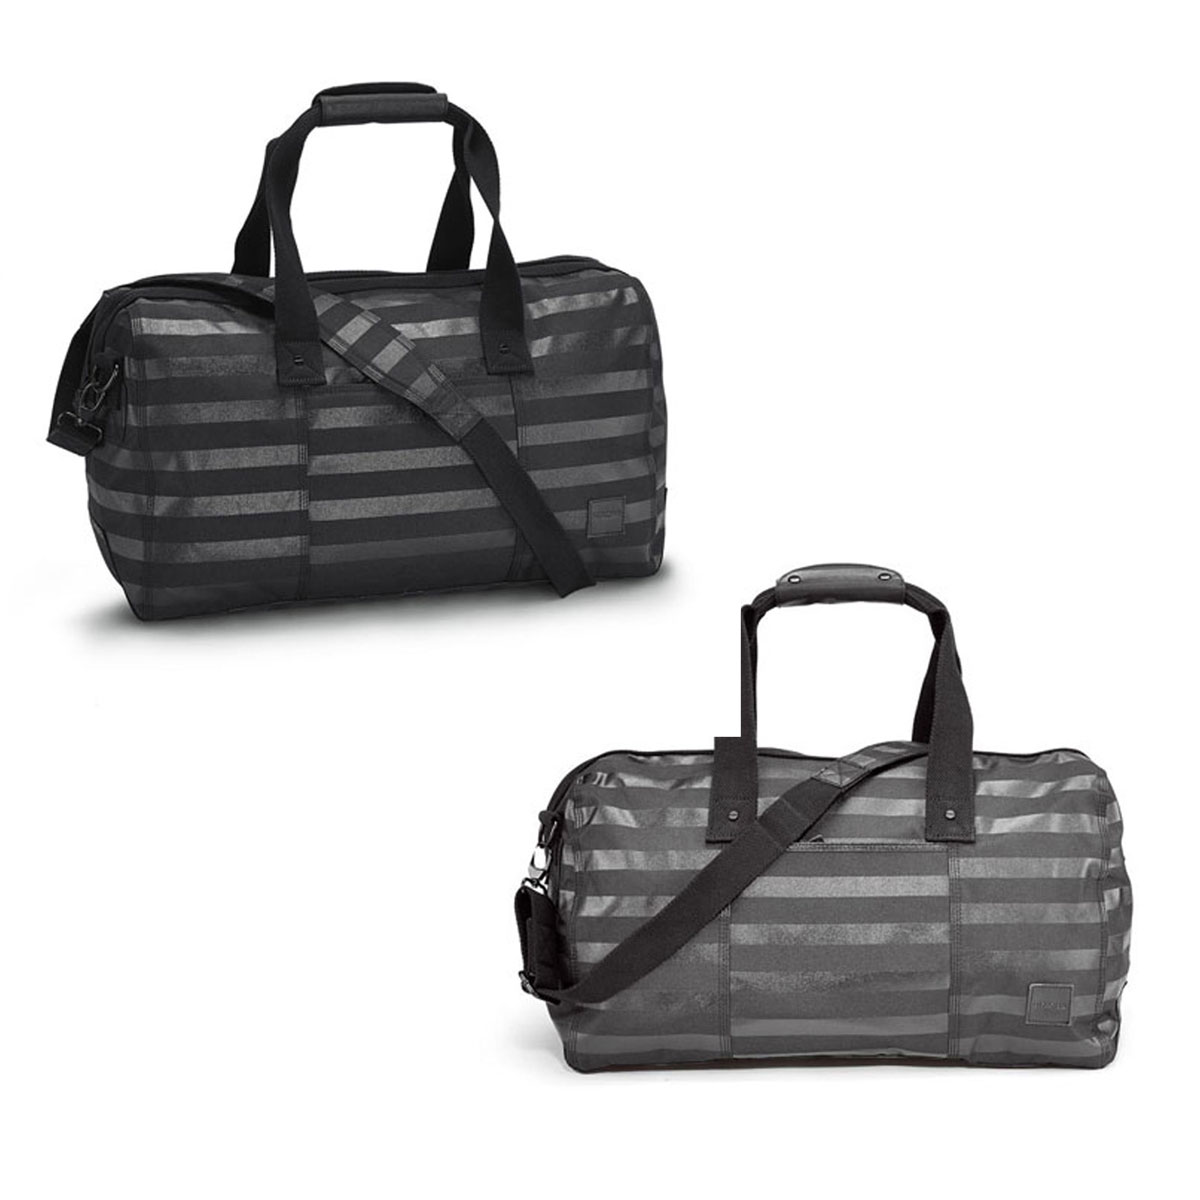 Nixon Regular Bag Convoy Duffle Grey Black Nc20071434 00 D15s25